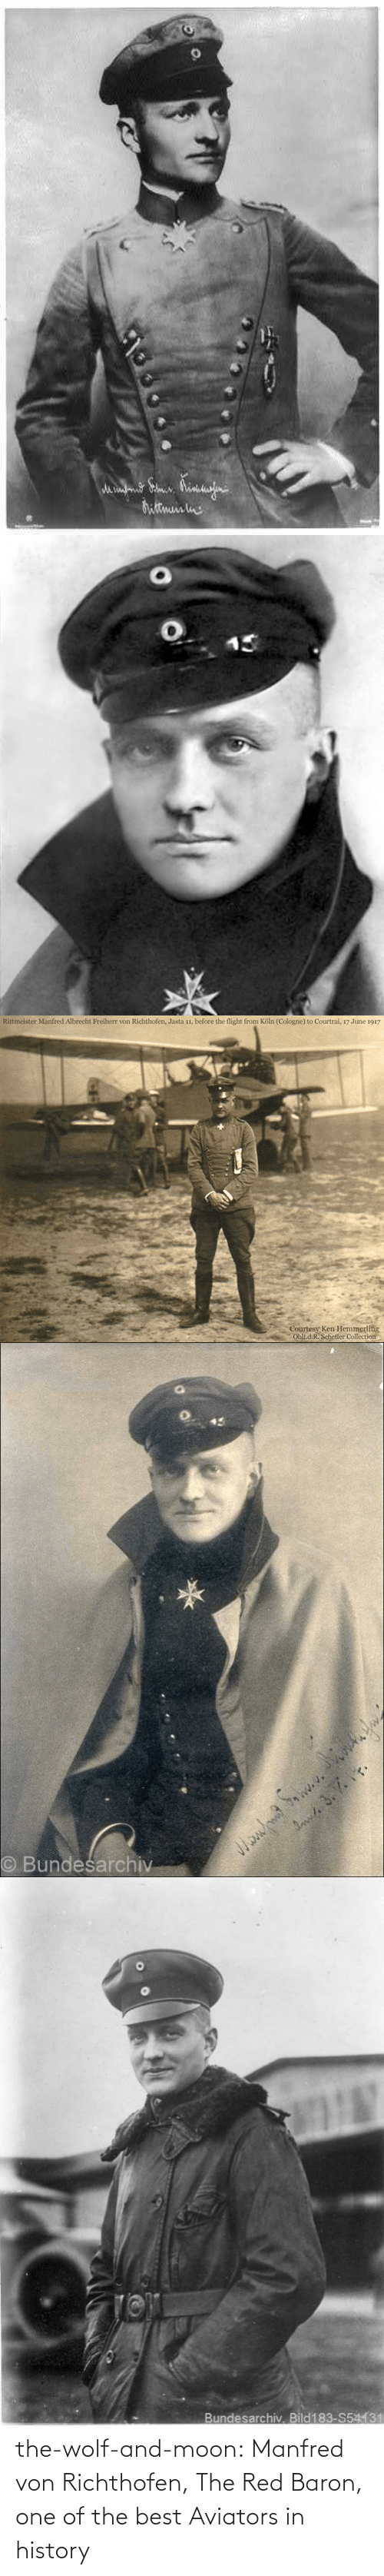 one of the best: the-wolf-and-moon:  Manfred von Richthofen, The Red Baron, one of the best Aviators in history